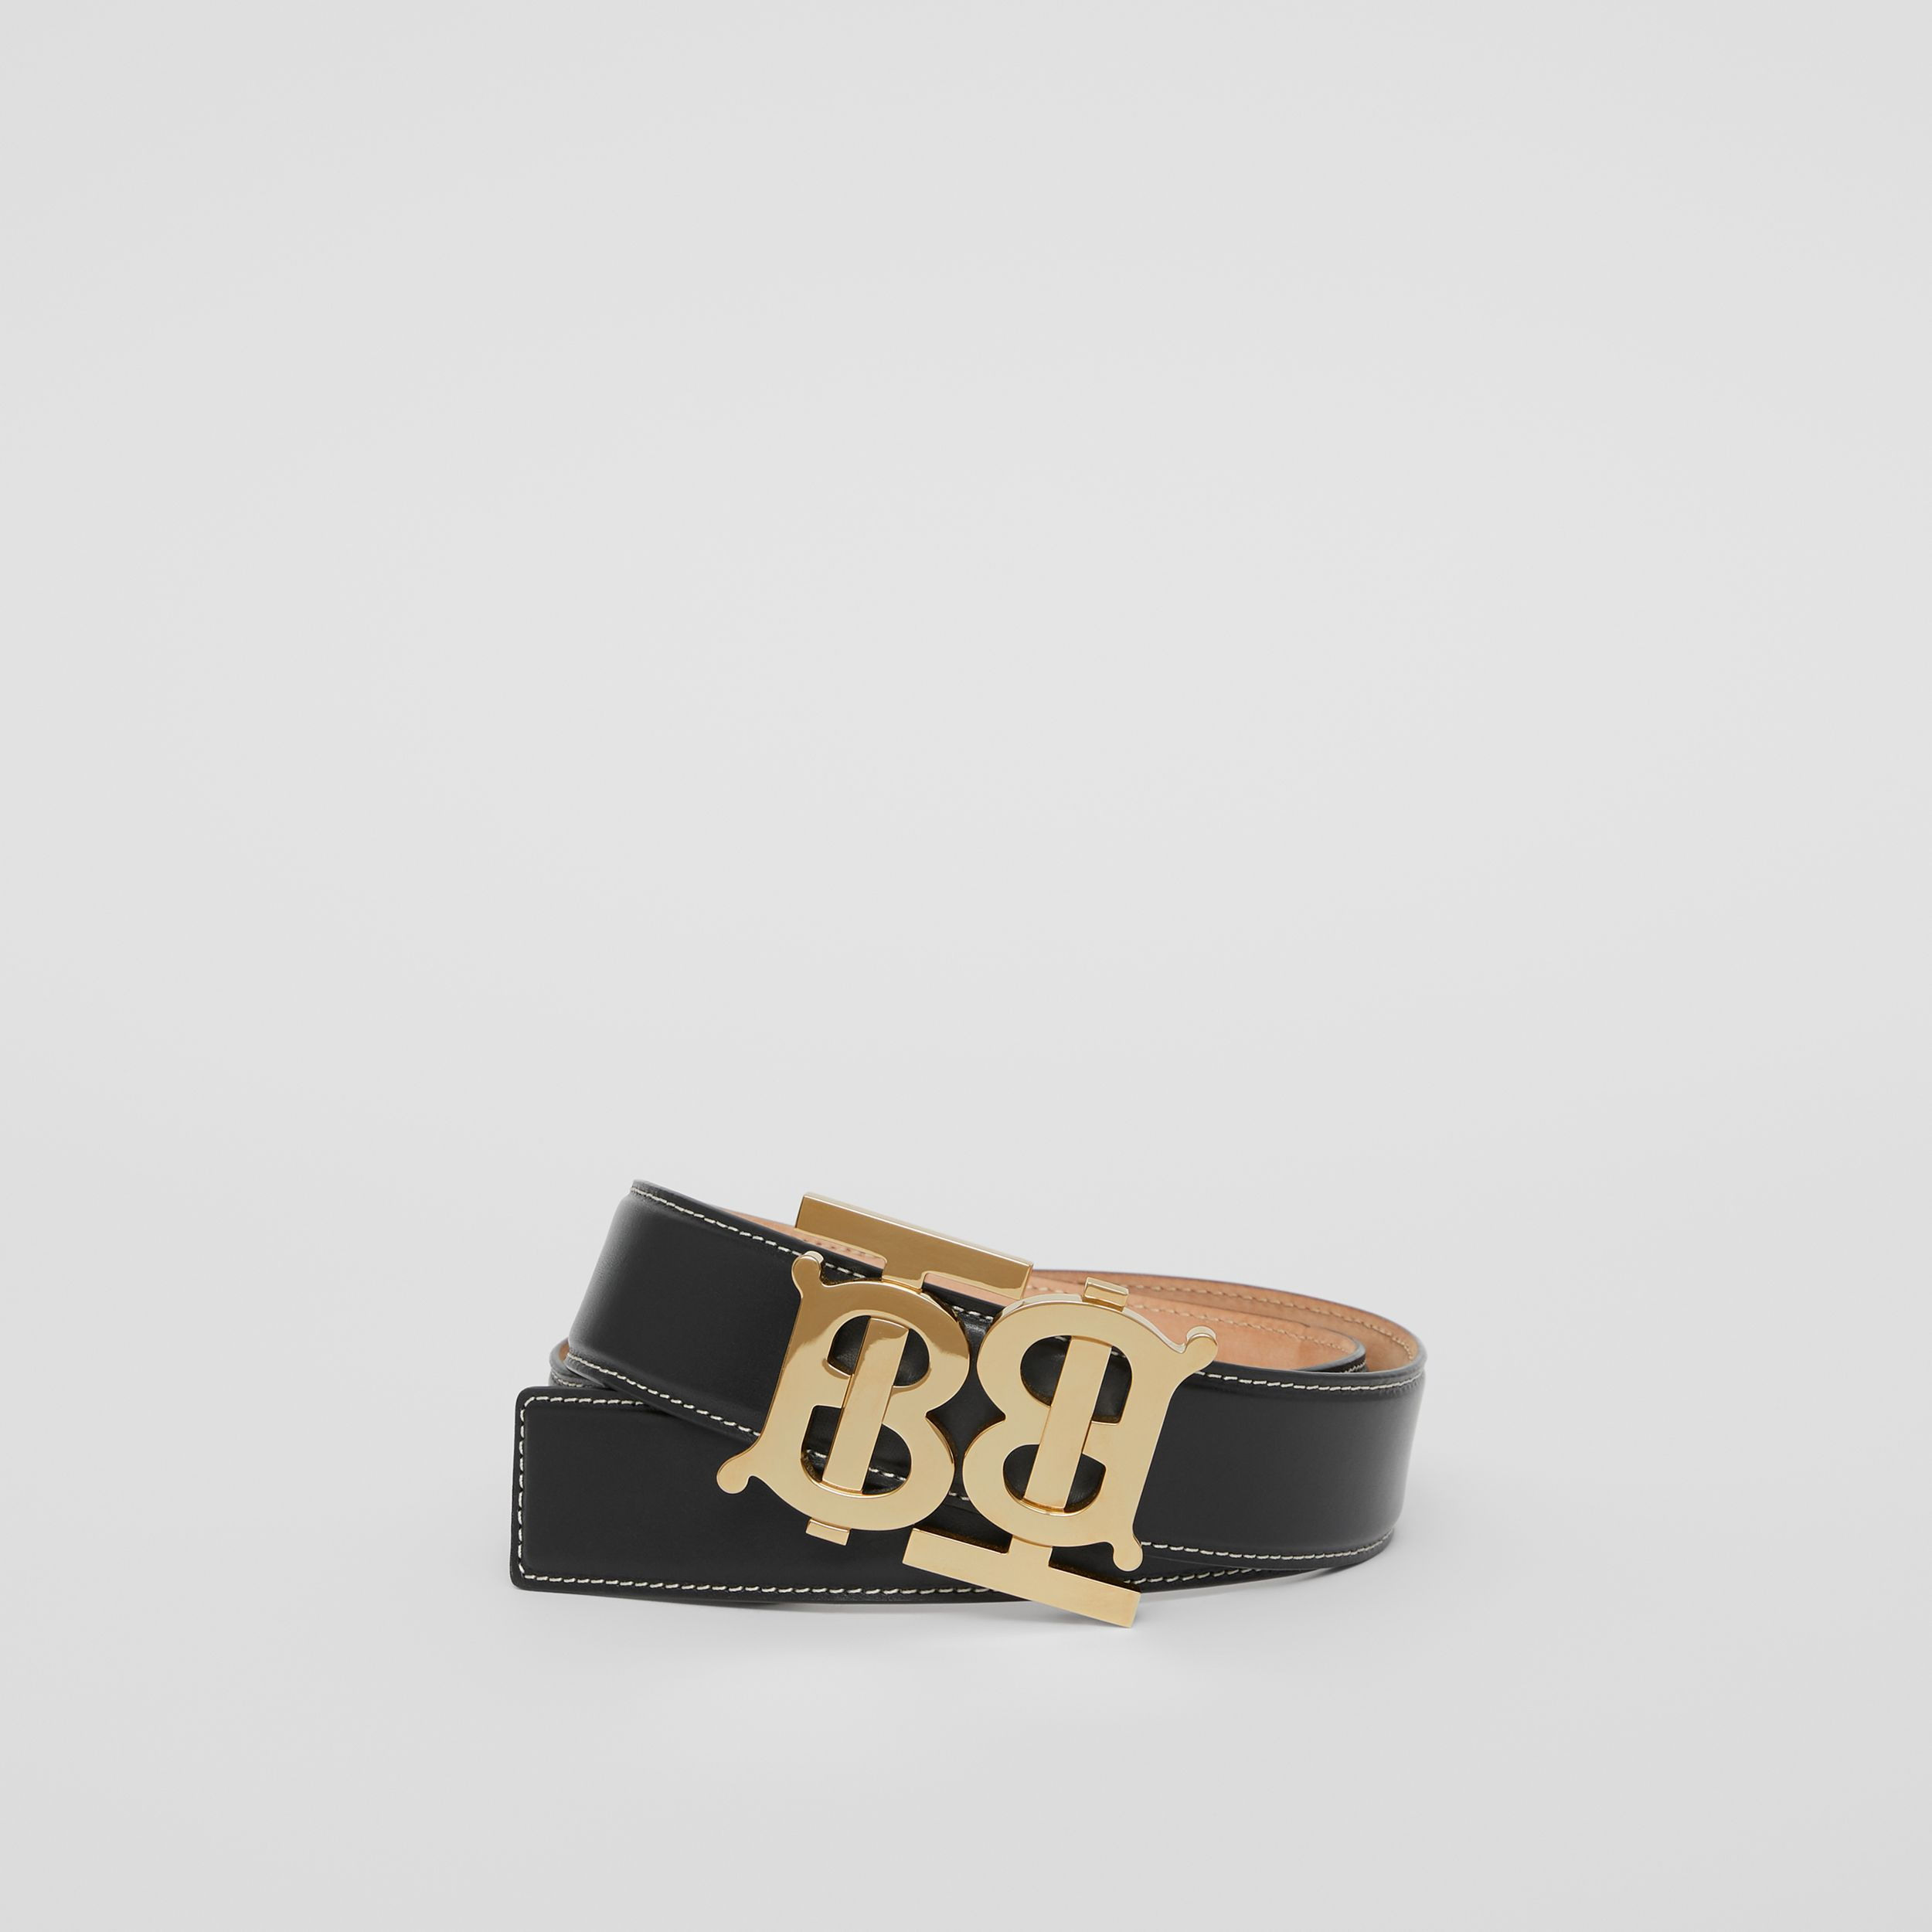 Double Monogram Motif Leather Belt in Black - Women | Burberry - 1